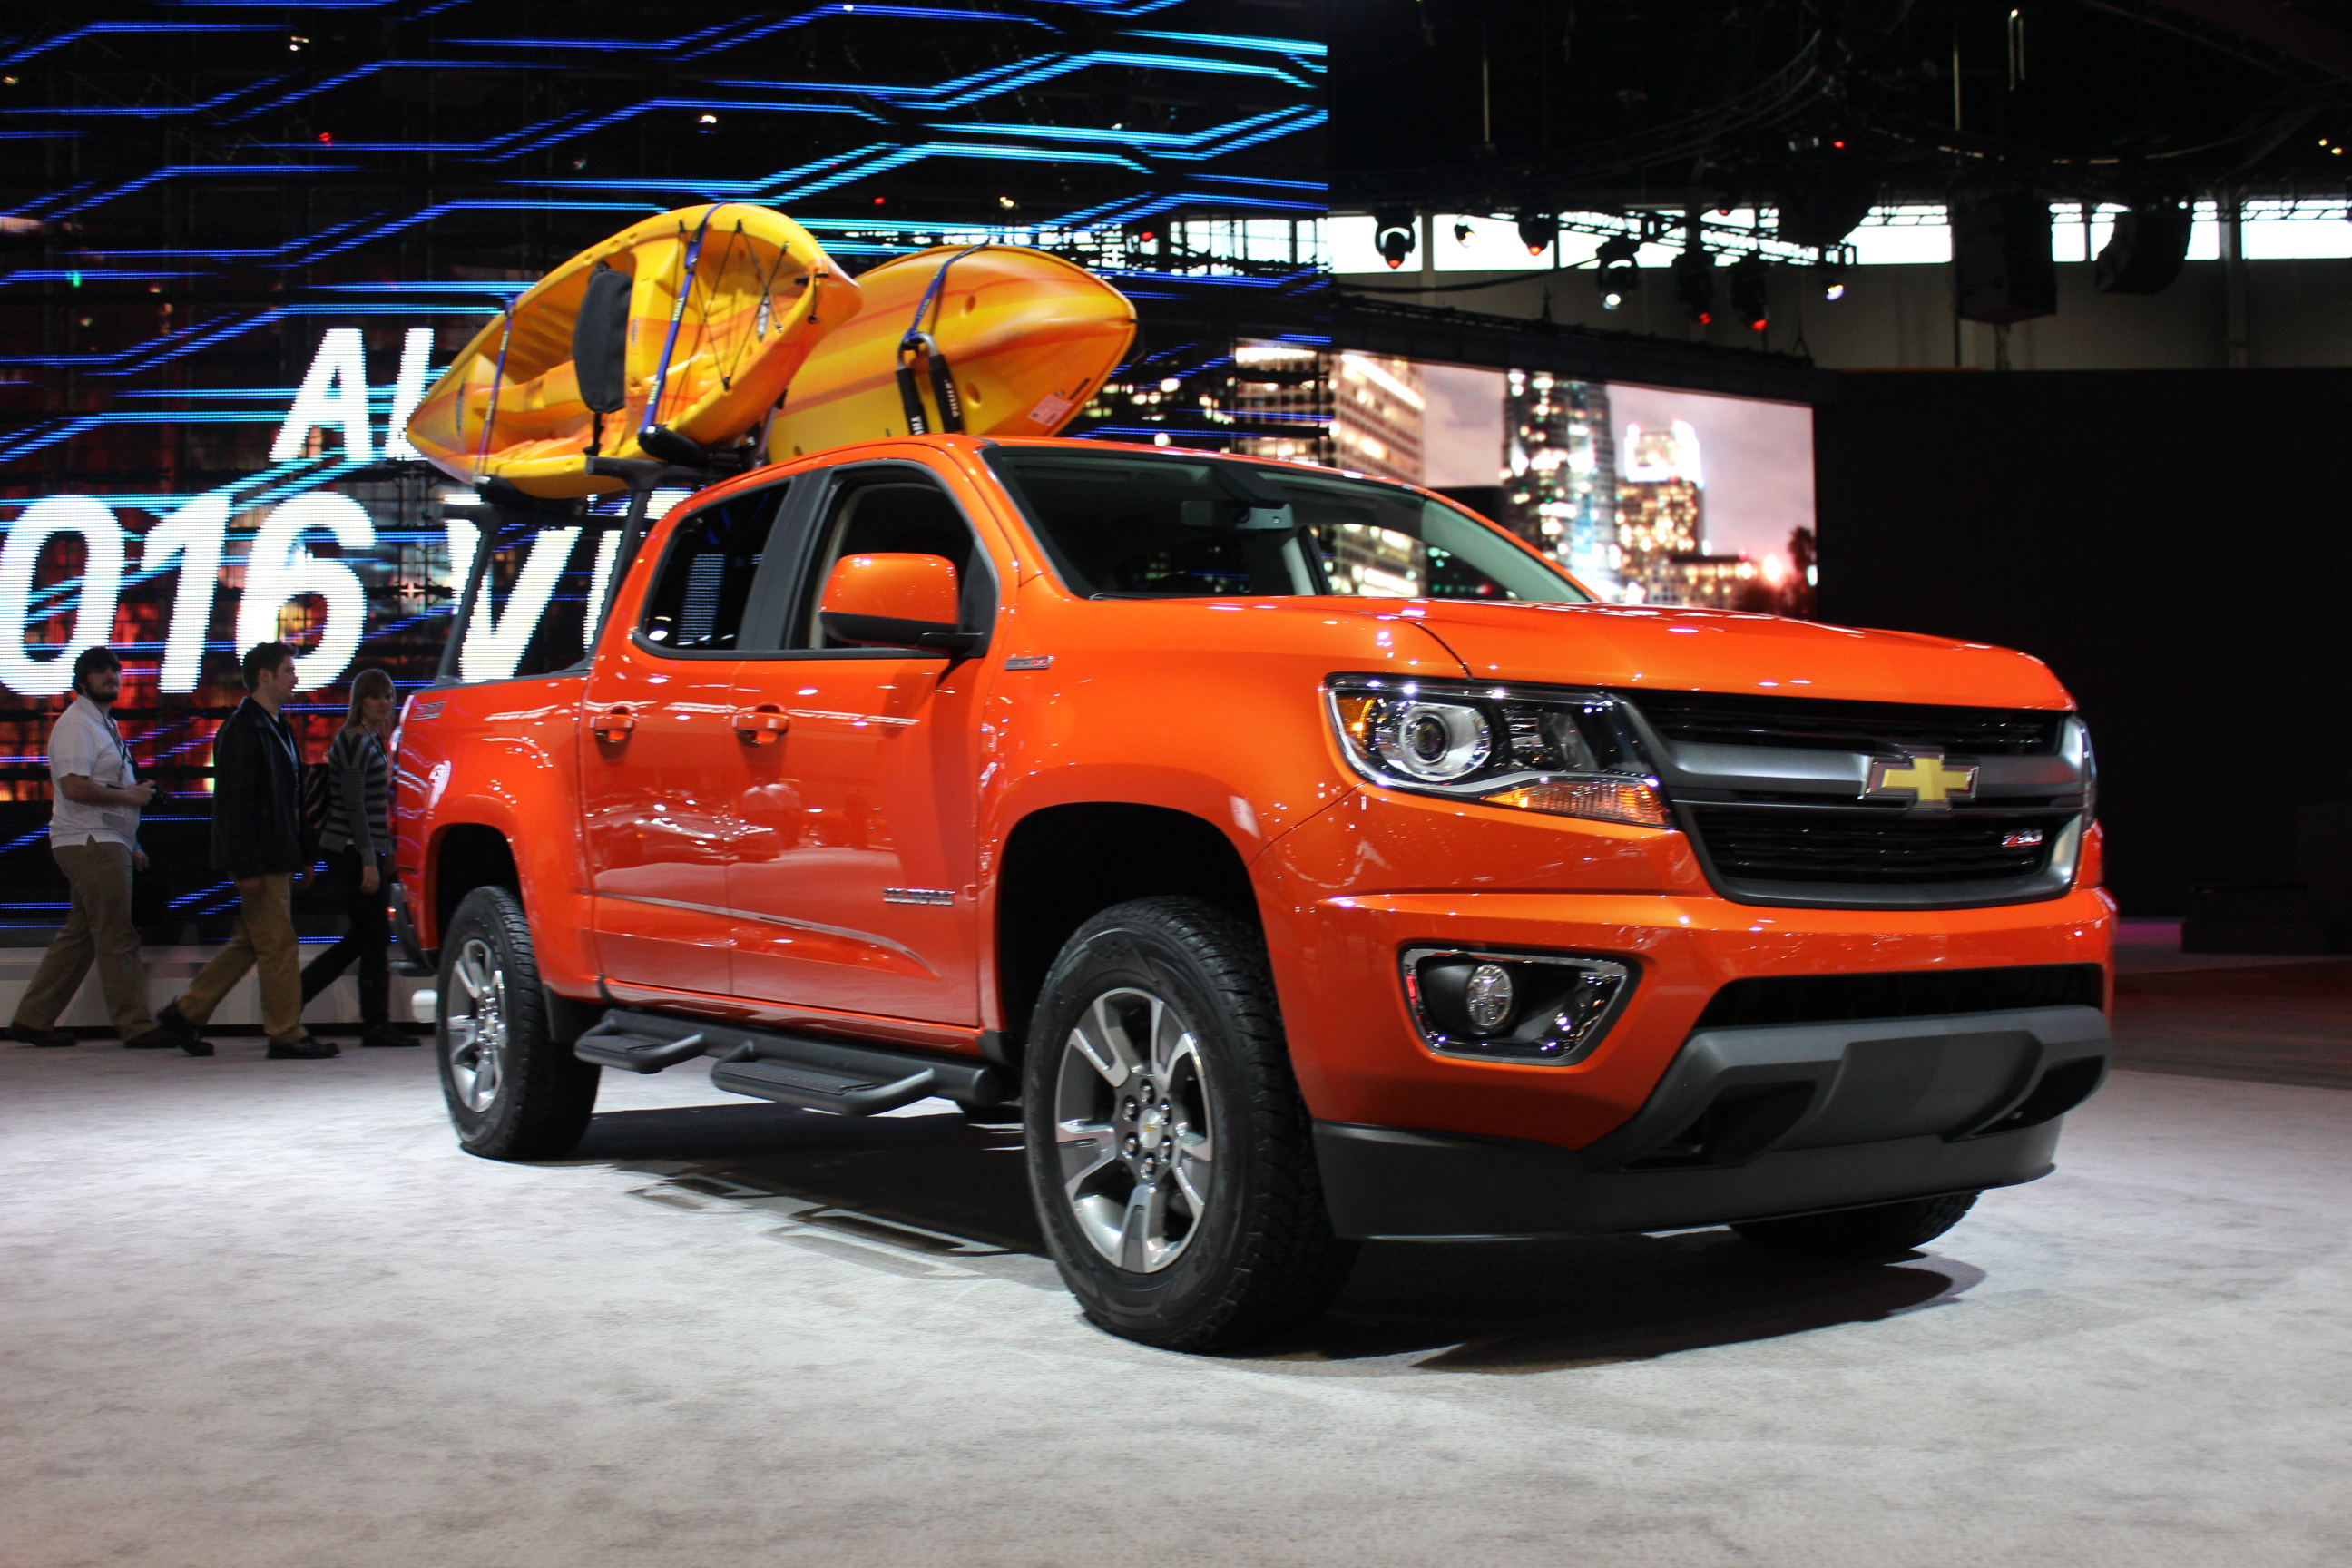 Chevy Volt 2016 Price Smaller Chevy Colorado Pickup A Hit: Plant Adds 3rd Shift ...